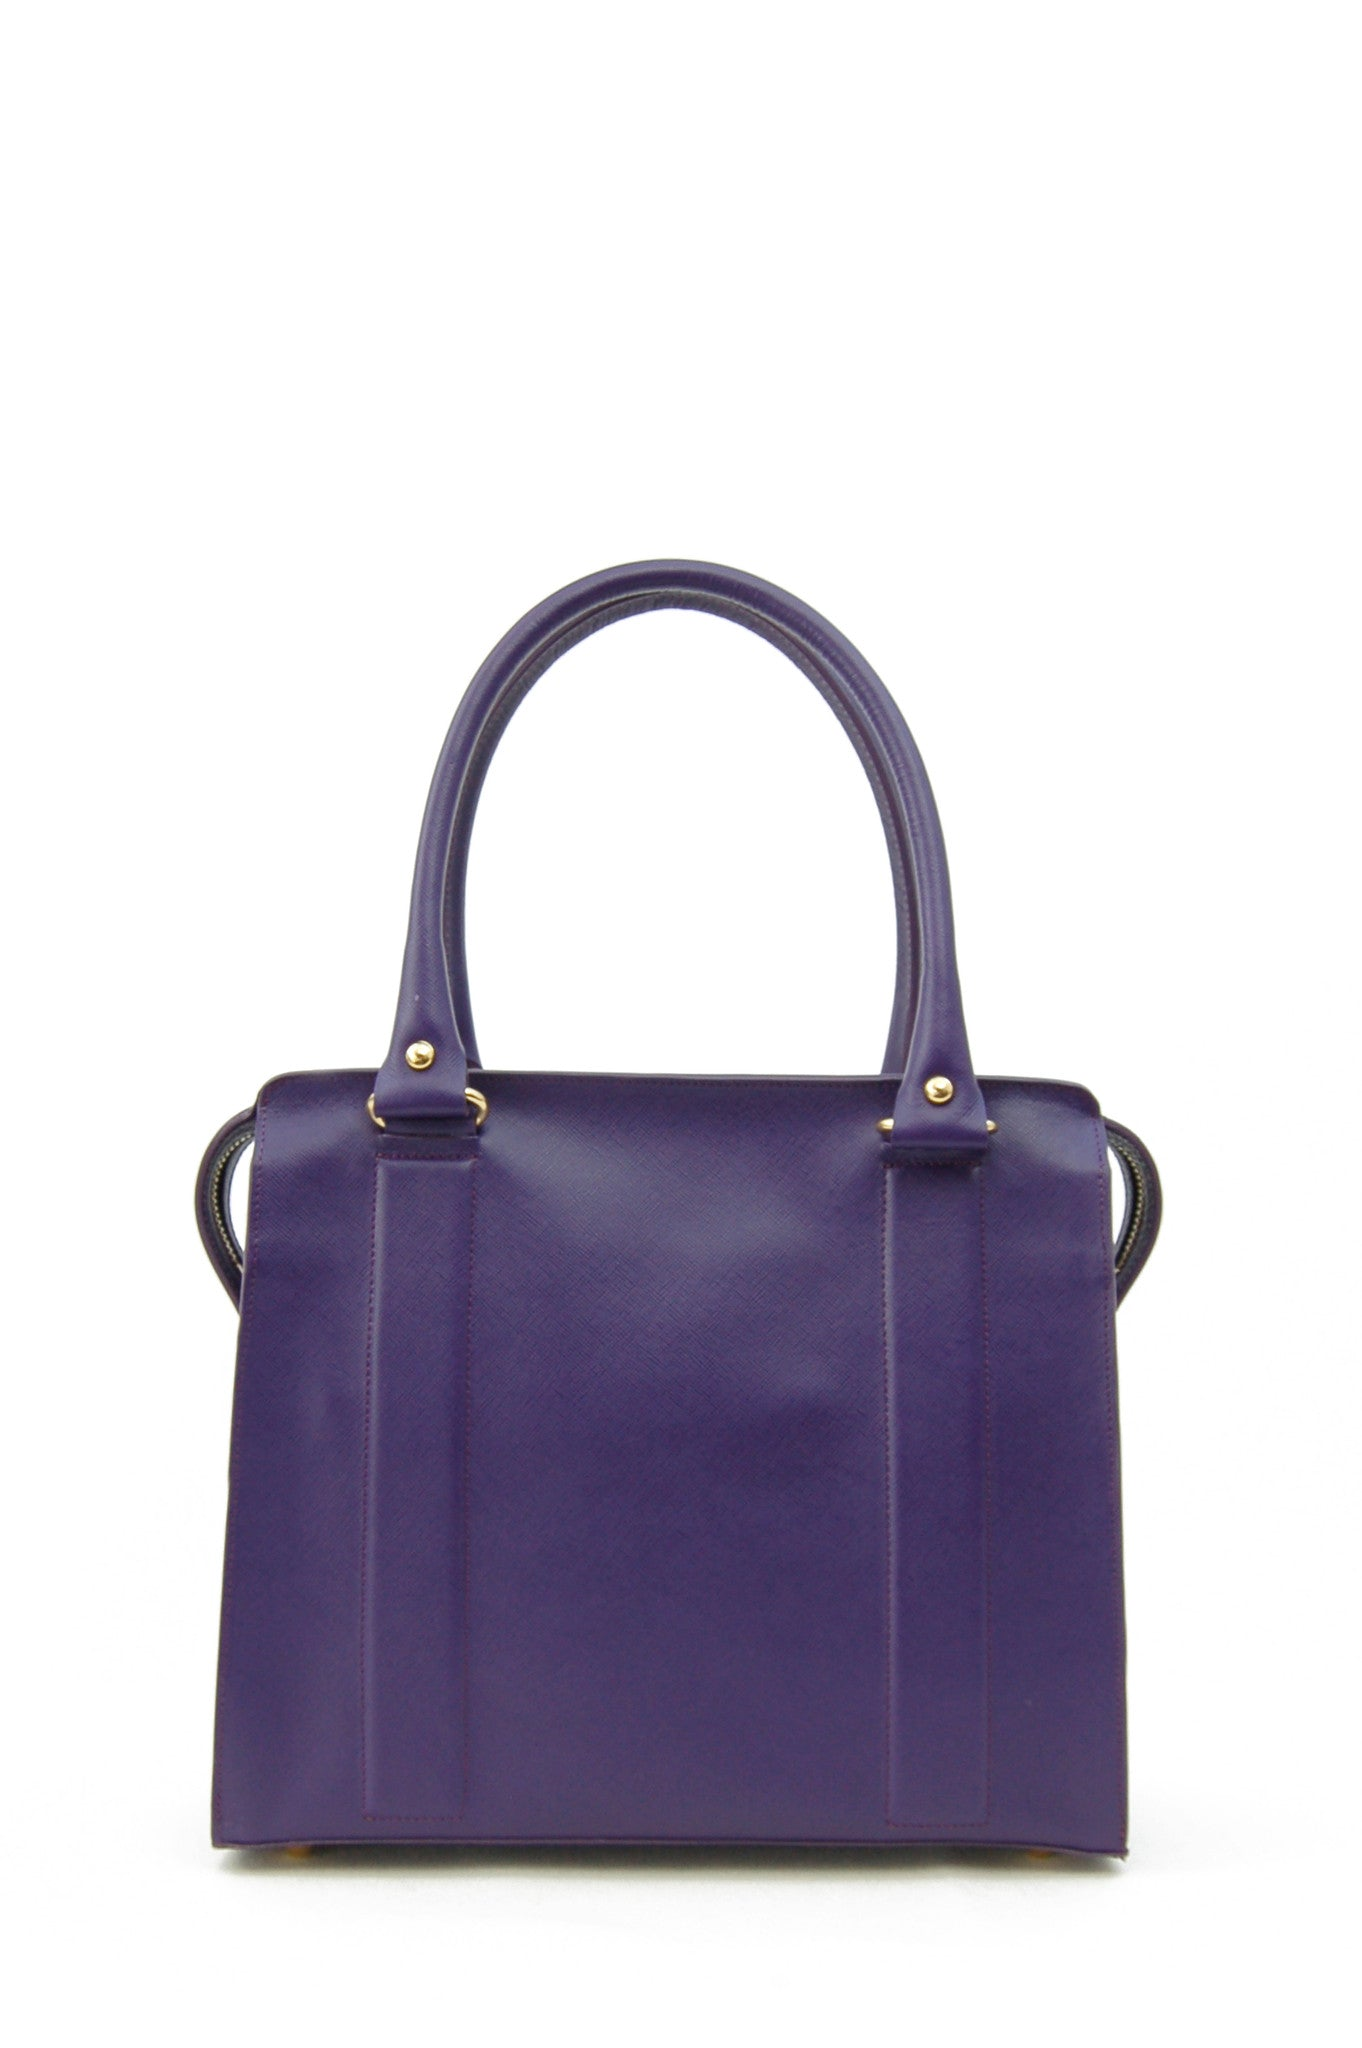 Middleton structured bag purple